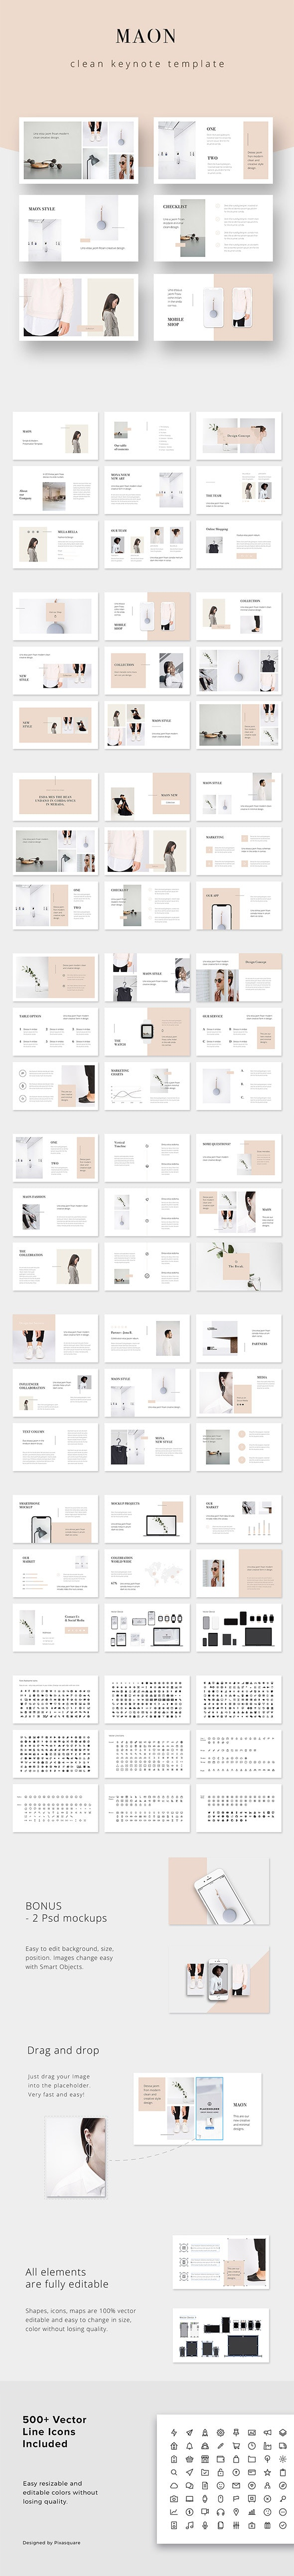 MAON - Keynote Presentation Template - Creative Keynote Templates